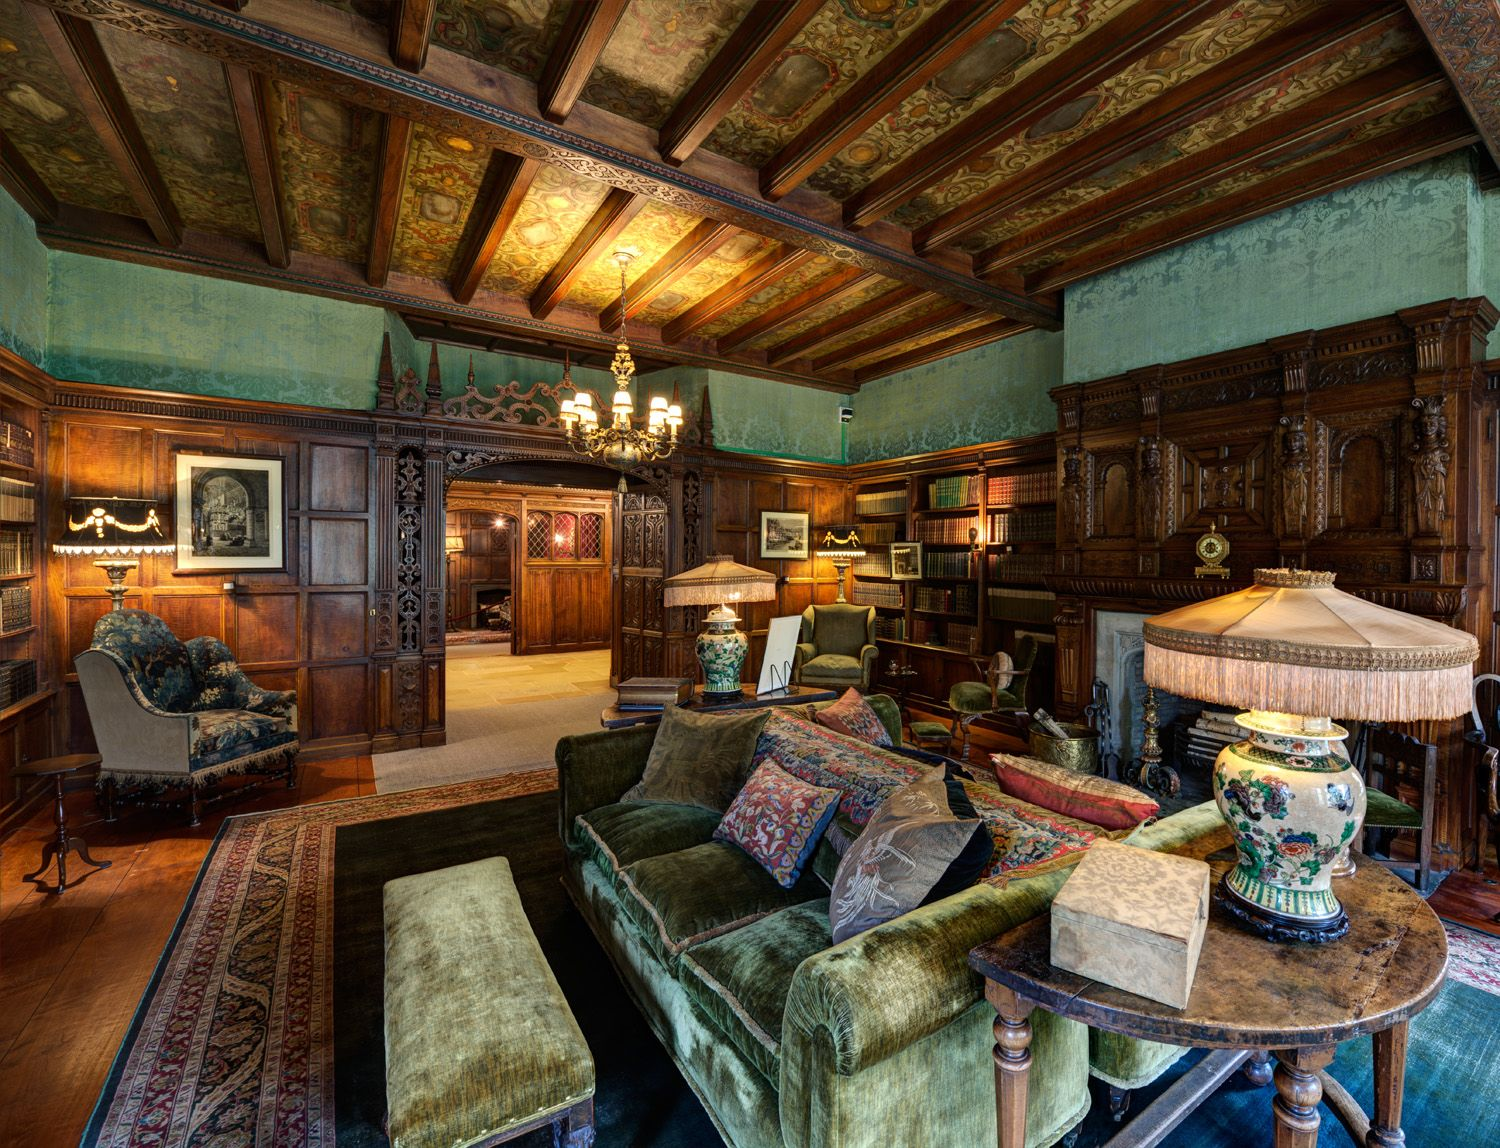 Tours & Attractions | Stan Hywet Hall & Gardens | stan hywet hall ...